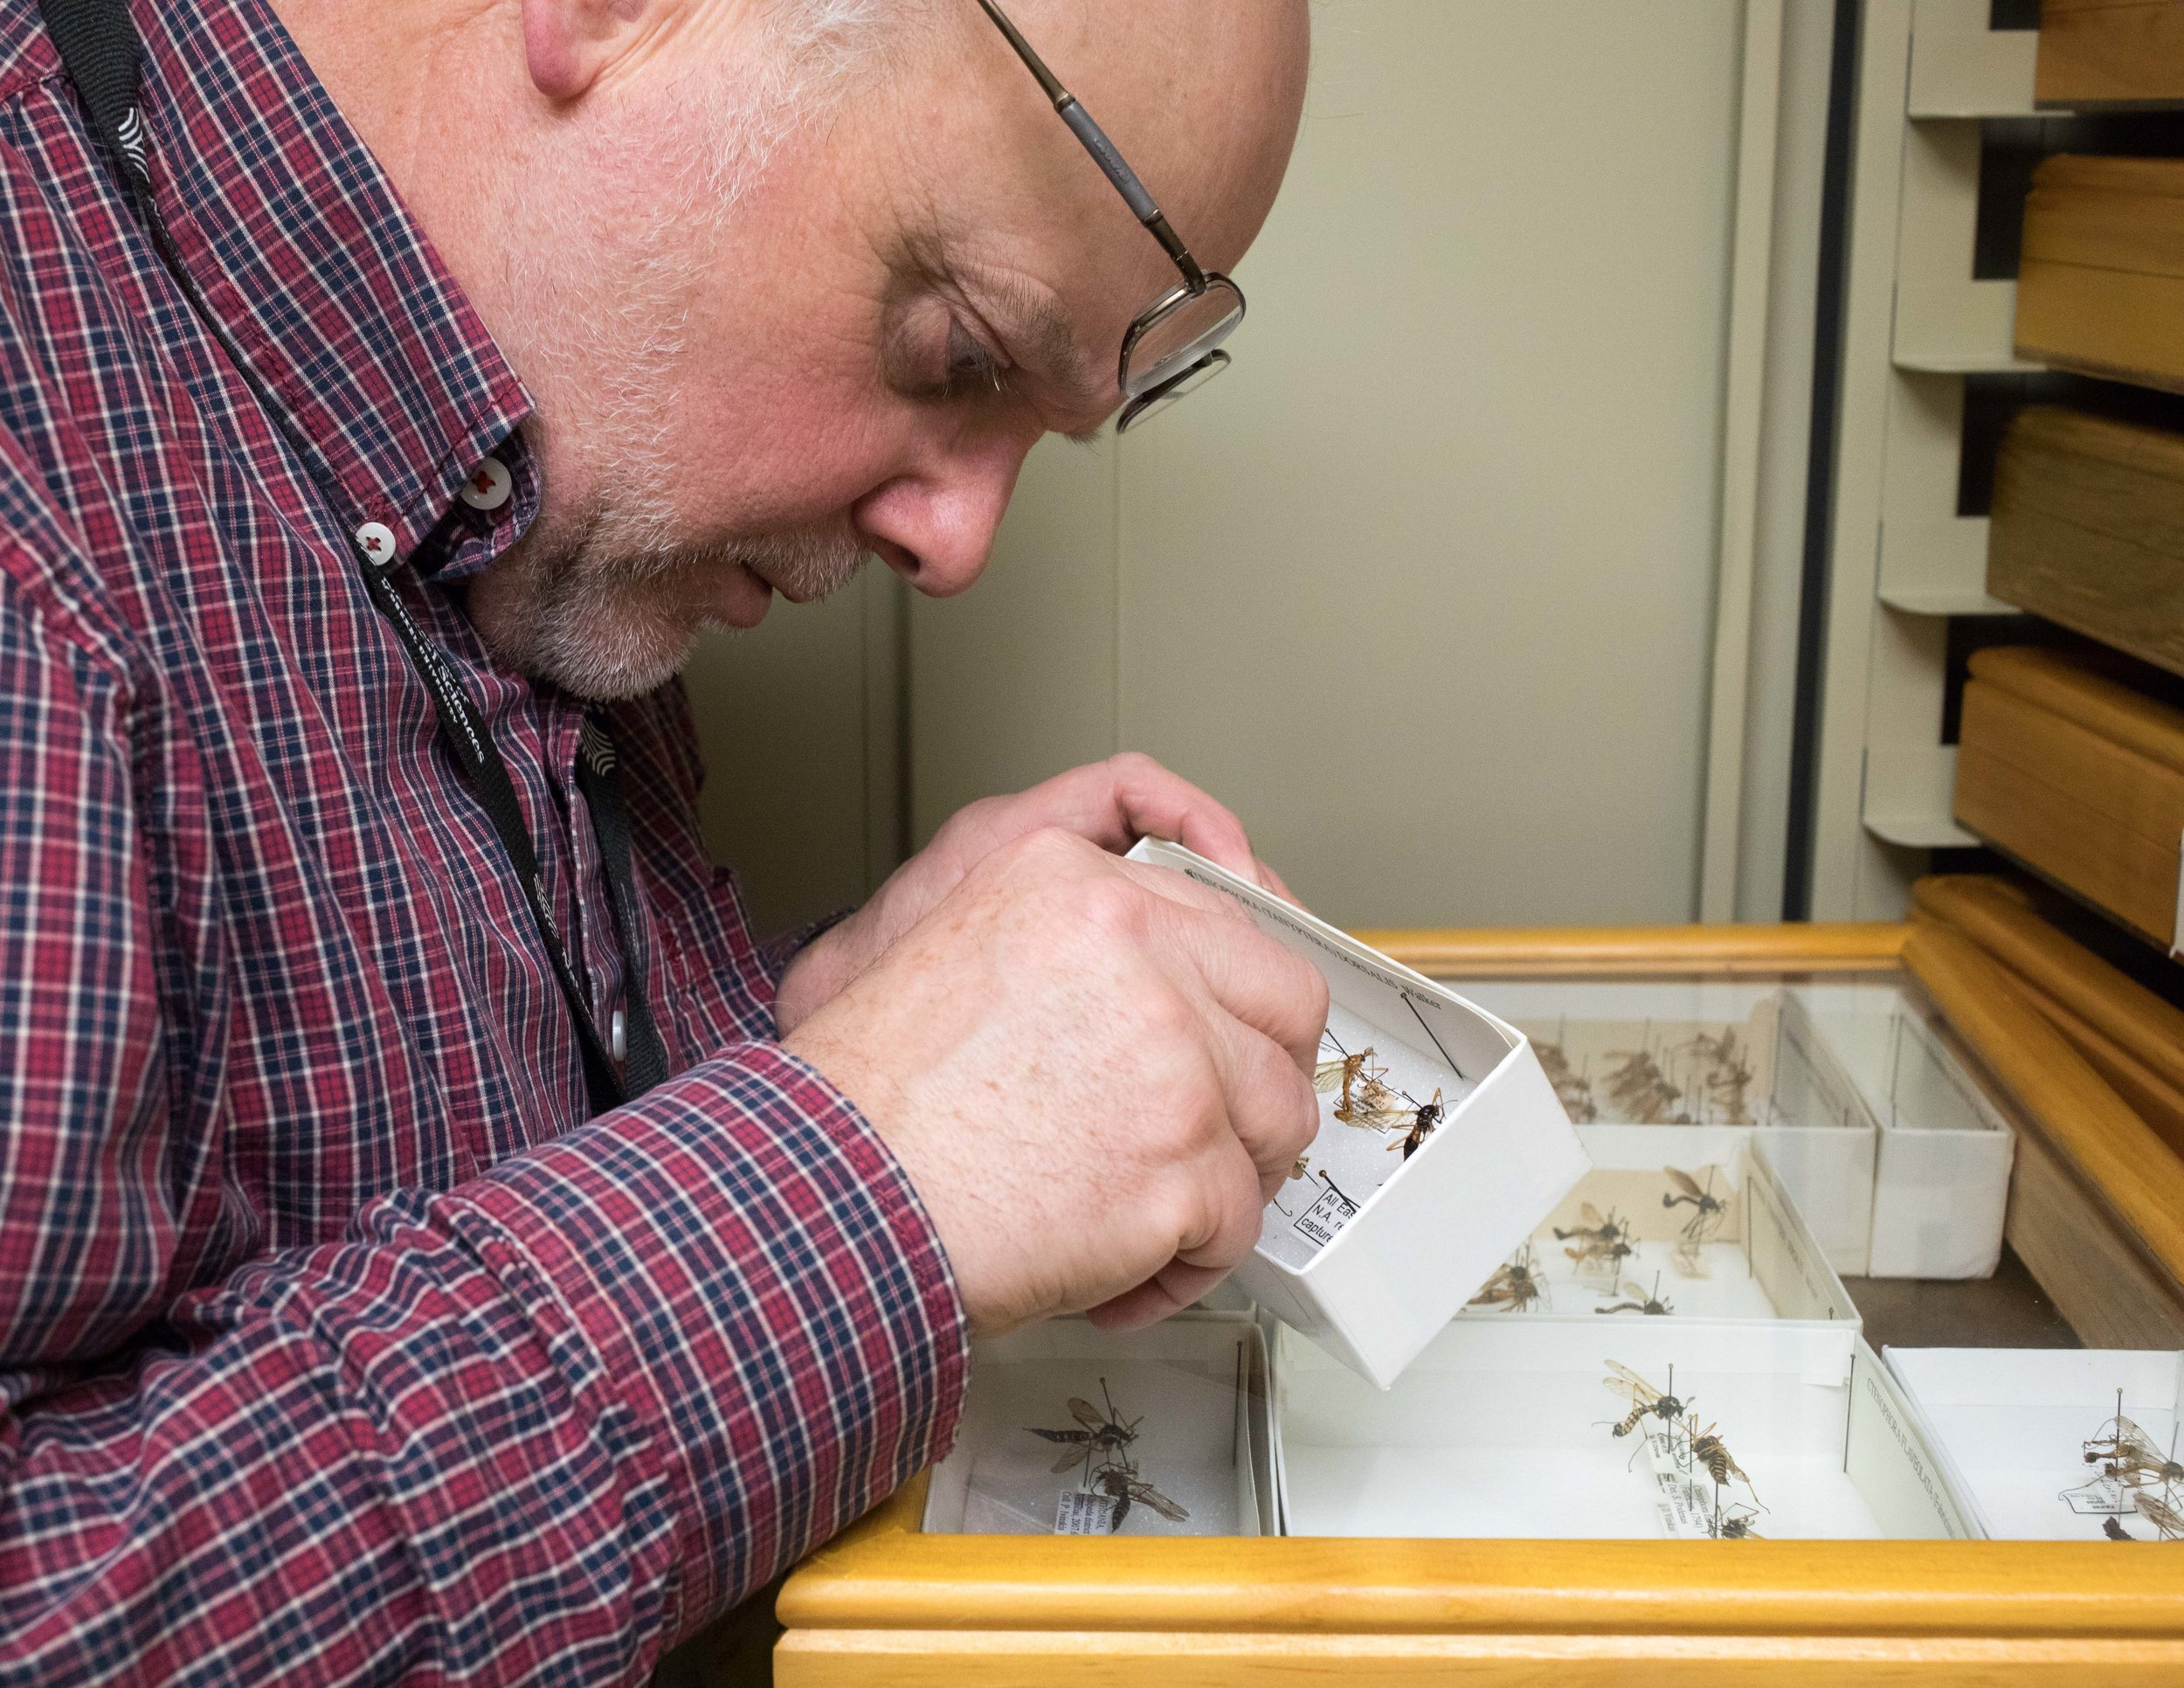 Dr. Jon Gelhaus, Curator of the collection, examines crane fly specimens. He is a world expert on this insect group and has amassed over 10,000 crane flies at the Academy of Natural Sciences.